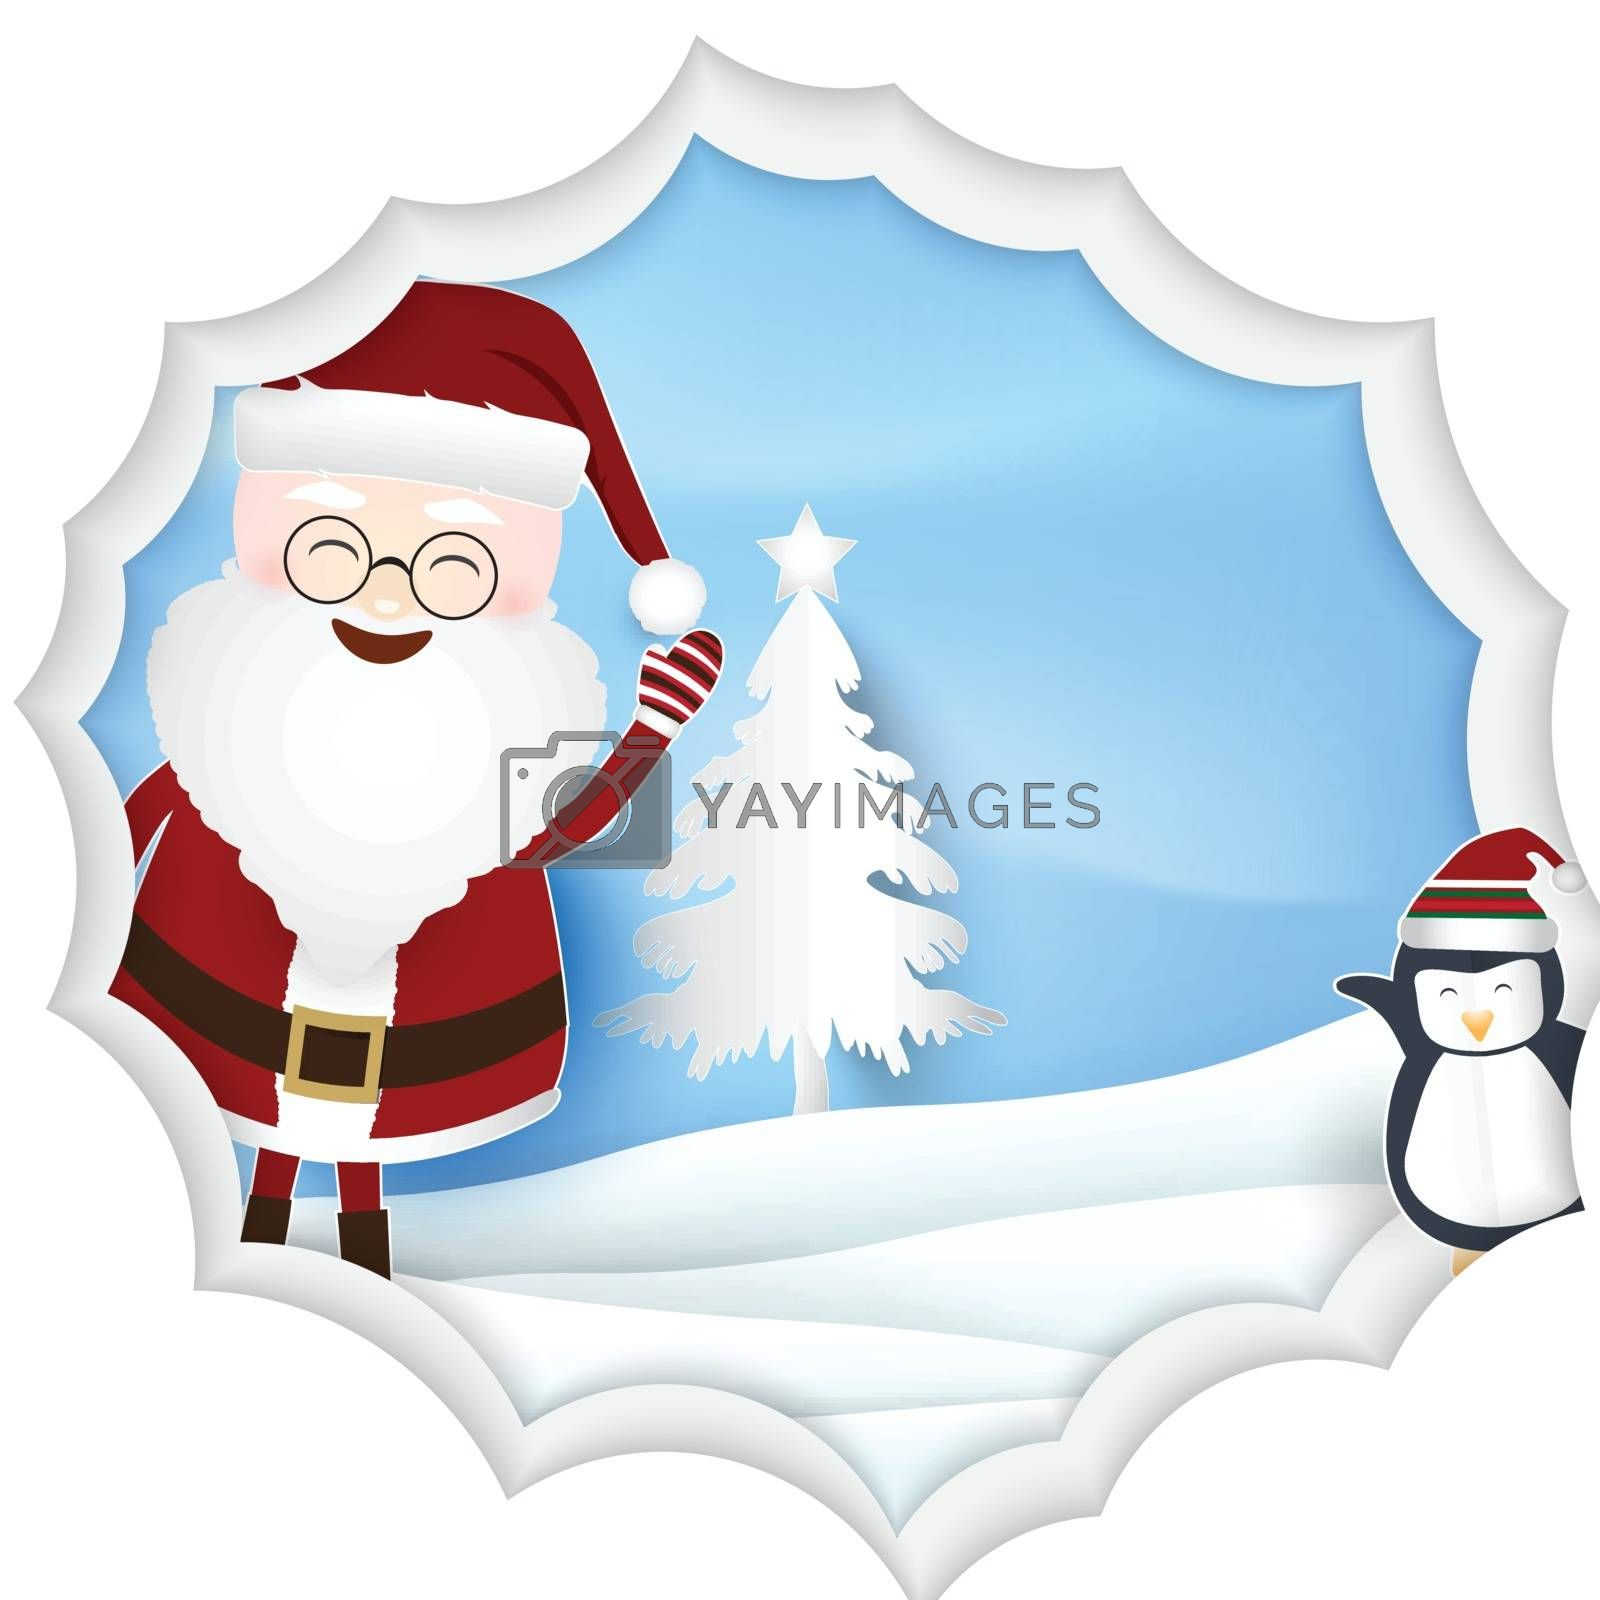 Christmas season with Santa and penguin Paper art illustration, Paper cut style